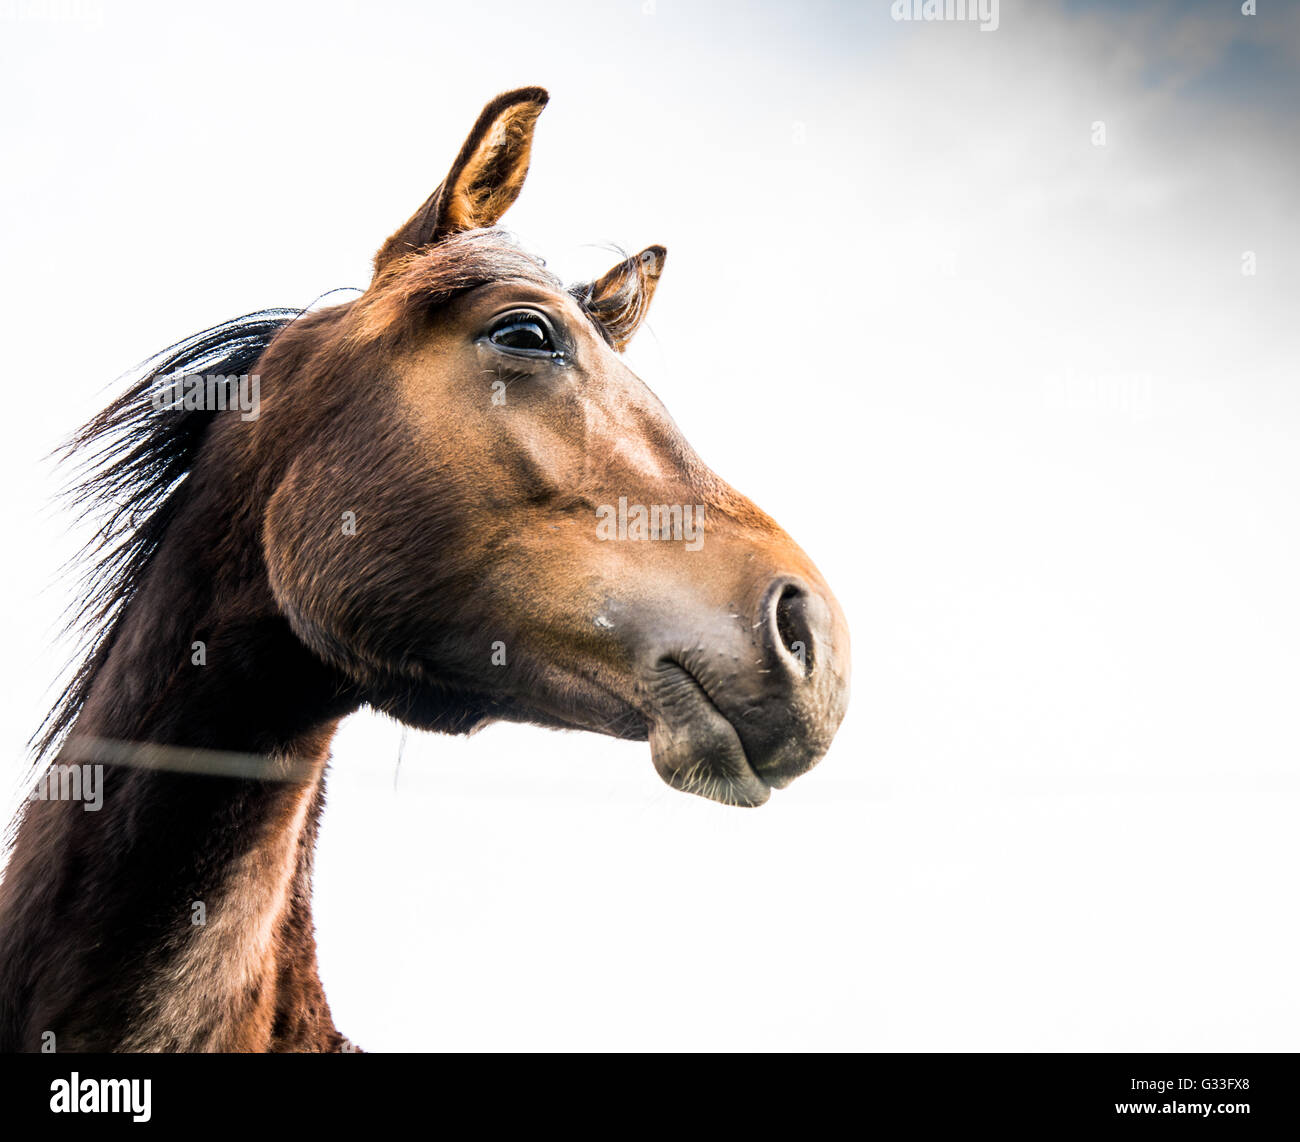 Horse behind the fence. - Stock Image